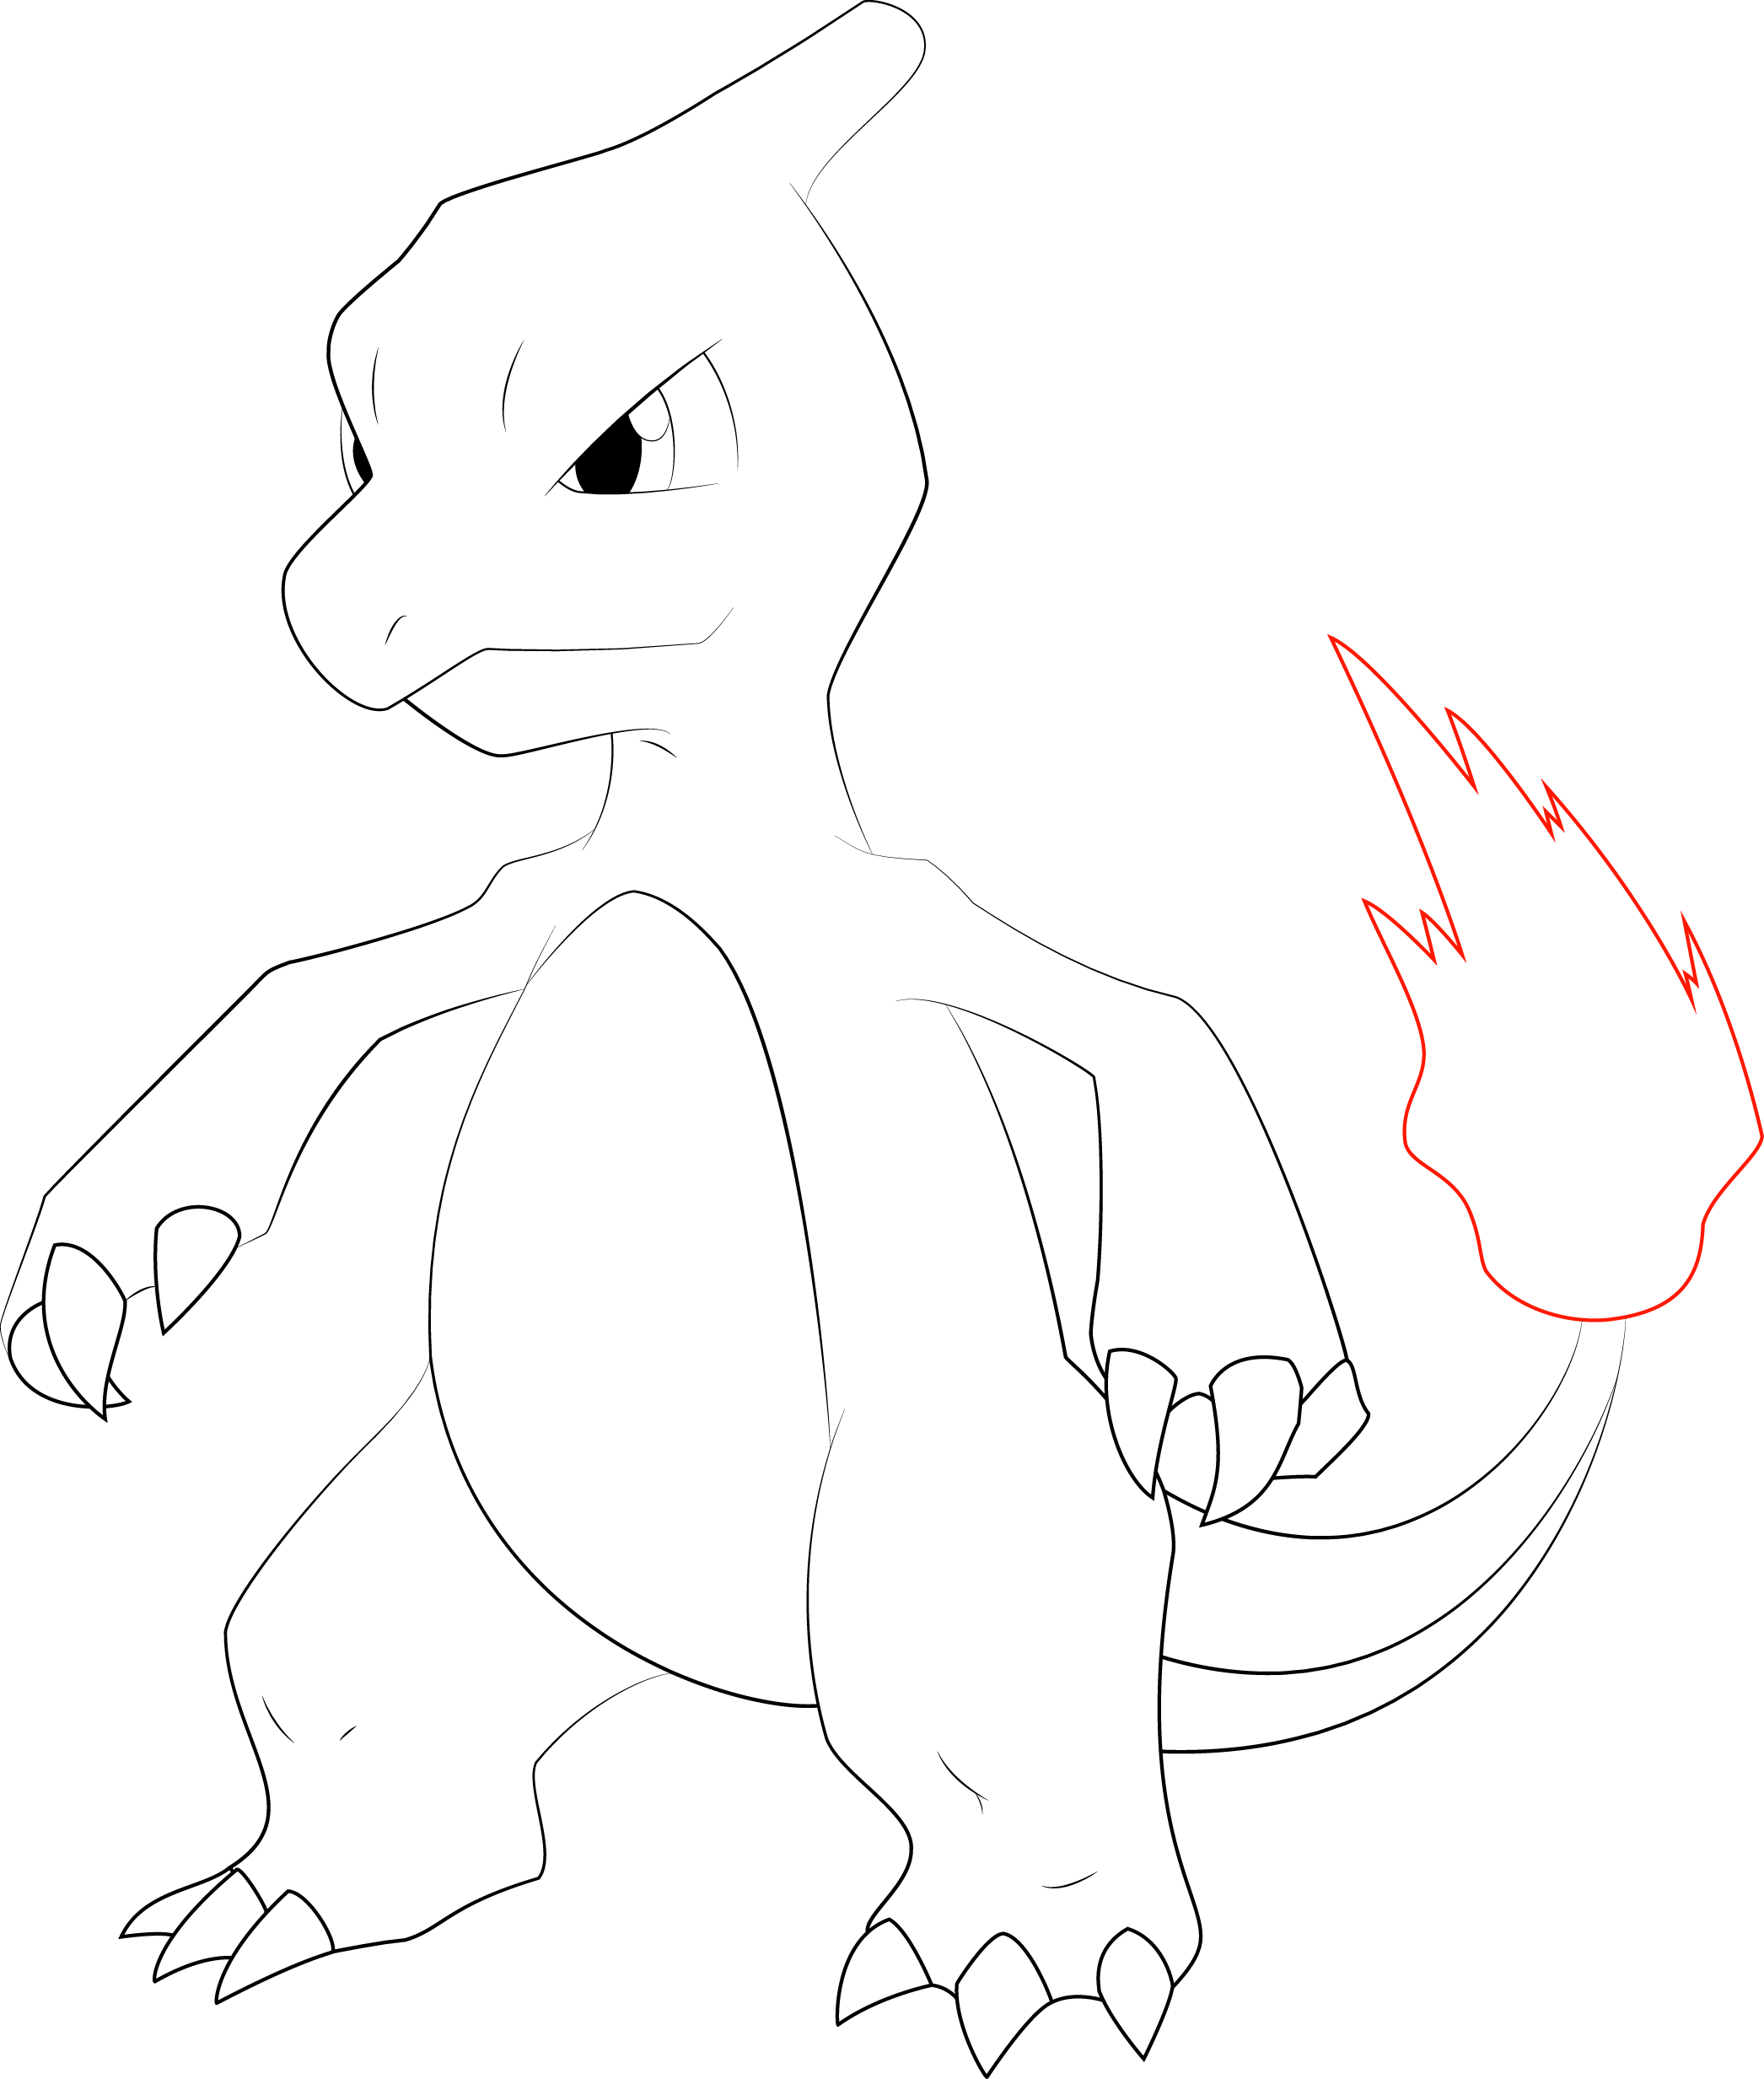 Pokemon Ausmalbilder Bisaflor : Charmeleon Line Art By Alcadeas1 Lineart Pokemon Detailed